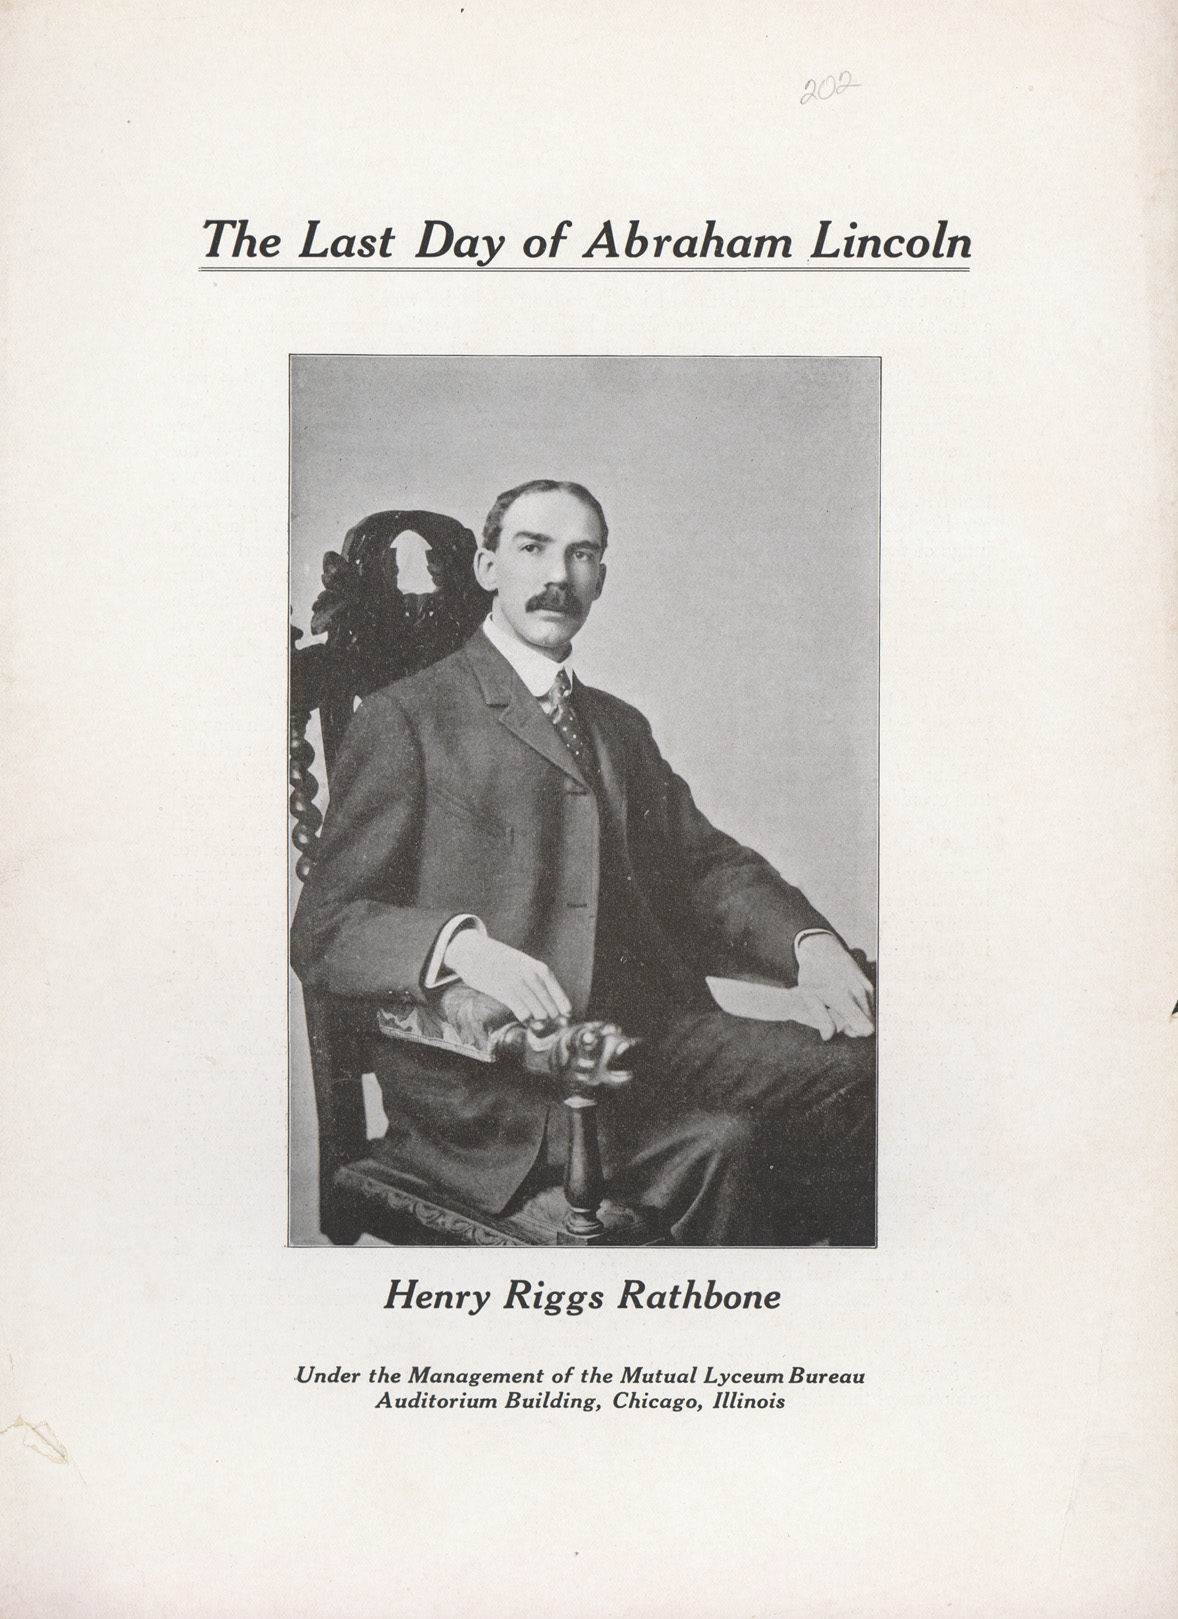 The Last Day of Abraham Lincoln - by Henry Riggs Rathbone